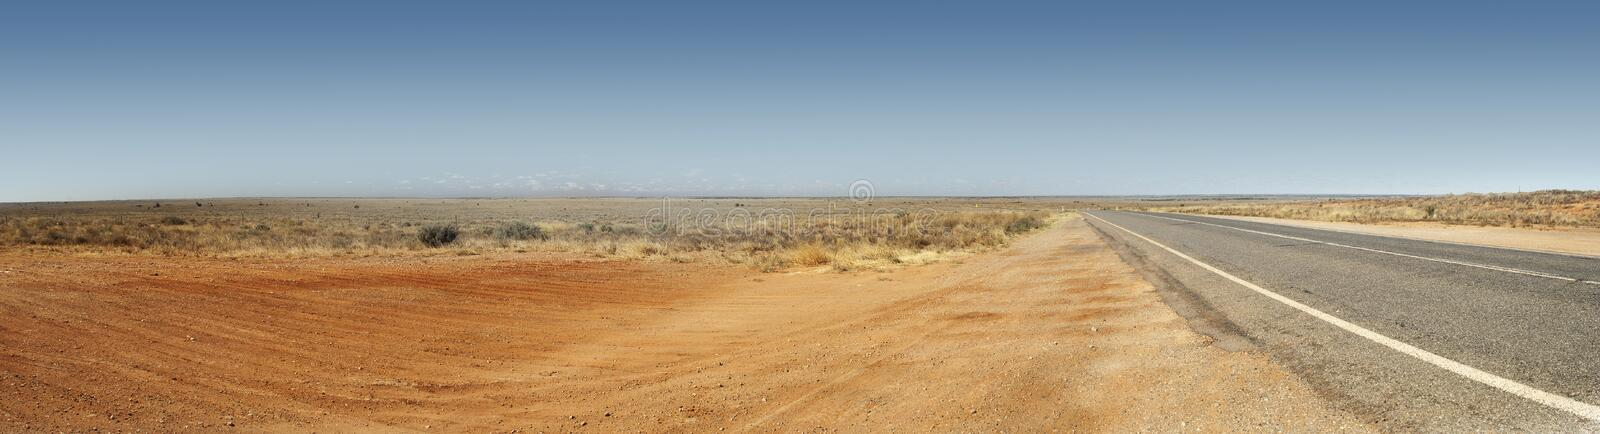 Australian Outback Road Panorama. Panorama of the Australian Outback with red dirt and remote road royalty free stock photography